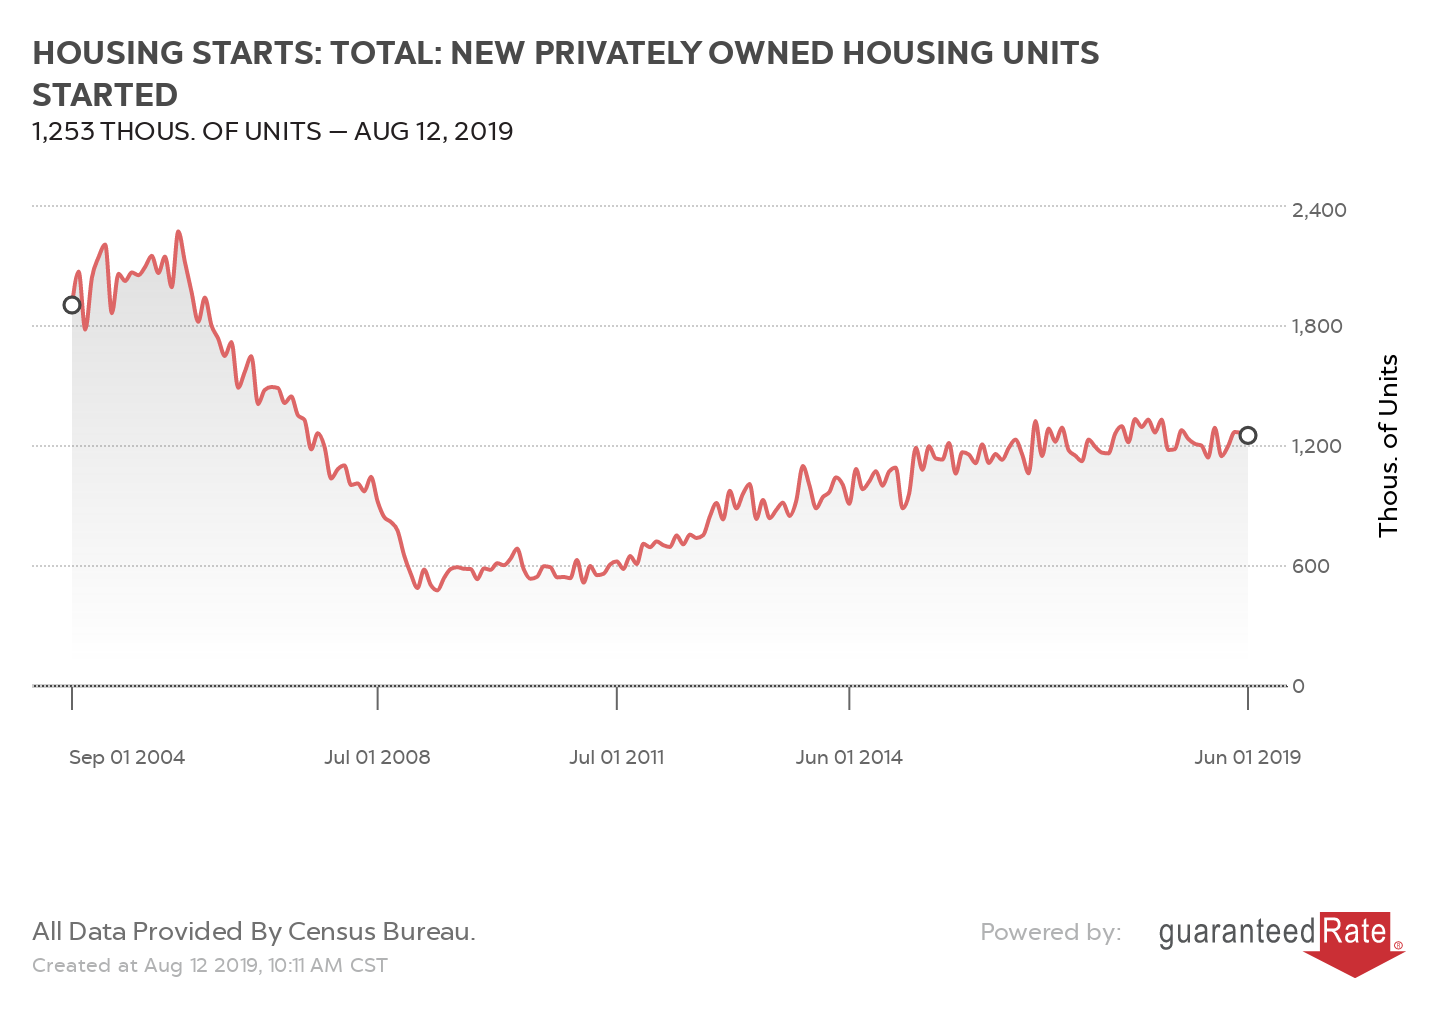 HOUSING STARTS: TOTAL: NEW PRIVATELY OWNED HOUSING UNITS STARTED